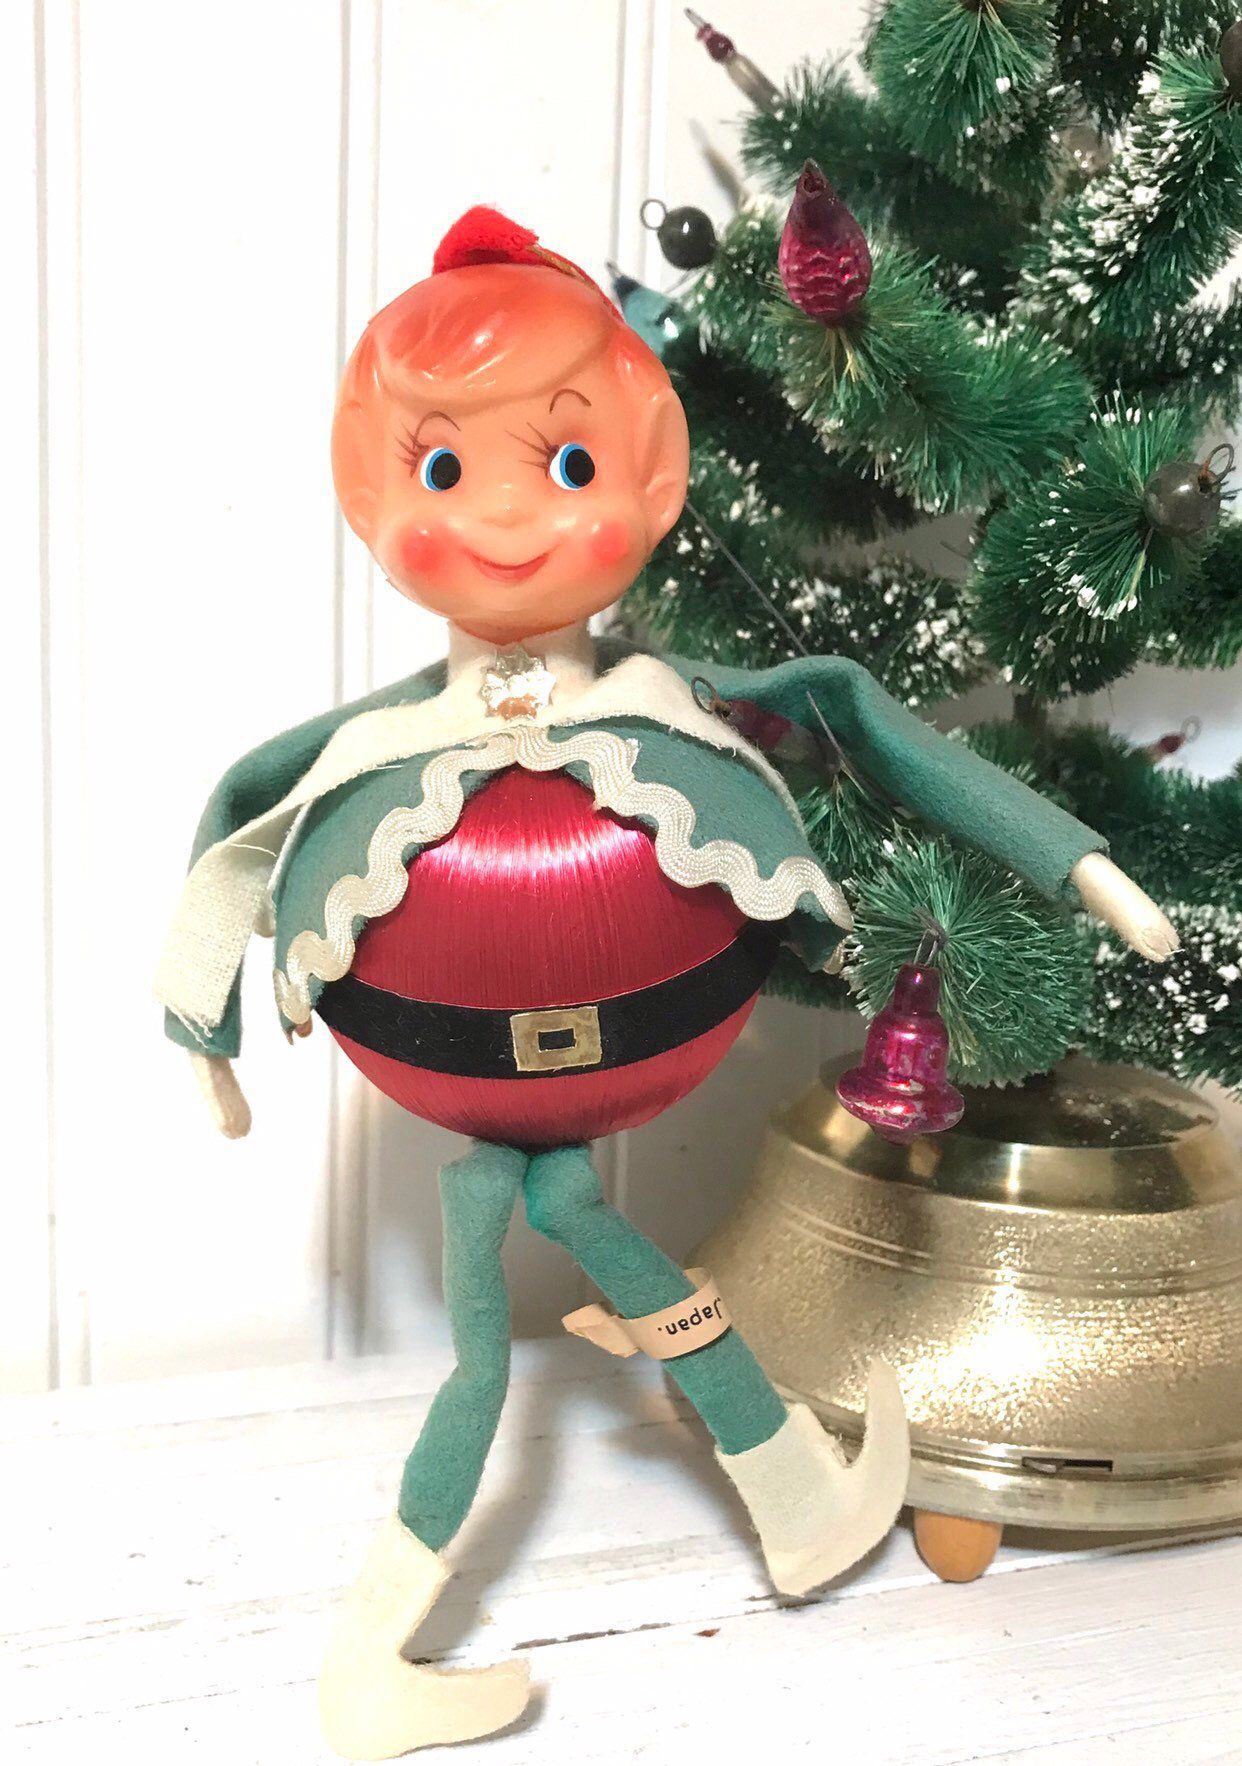 Excited to share this item from my etsy shop Vintage Elf